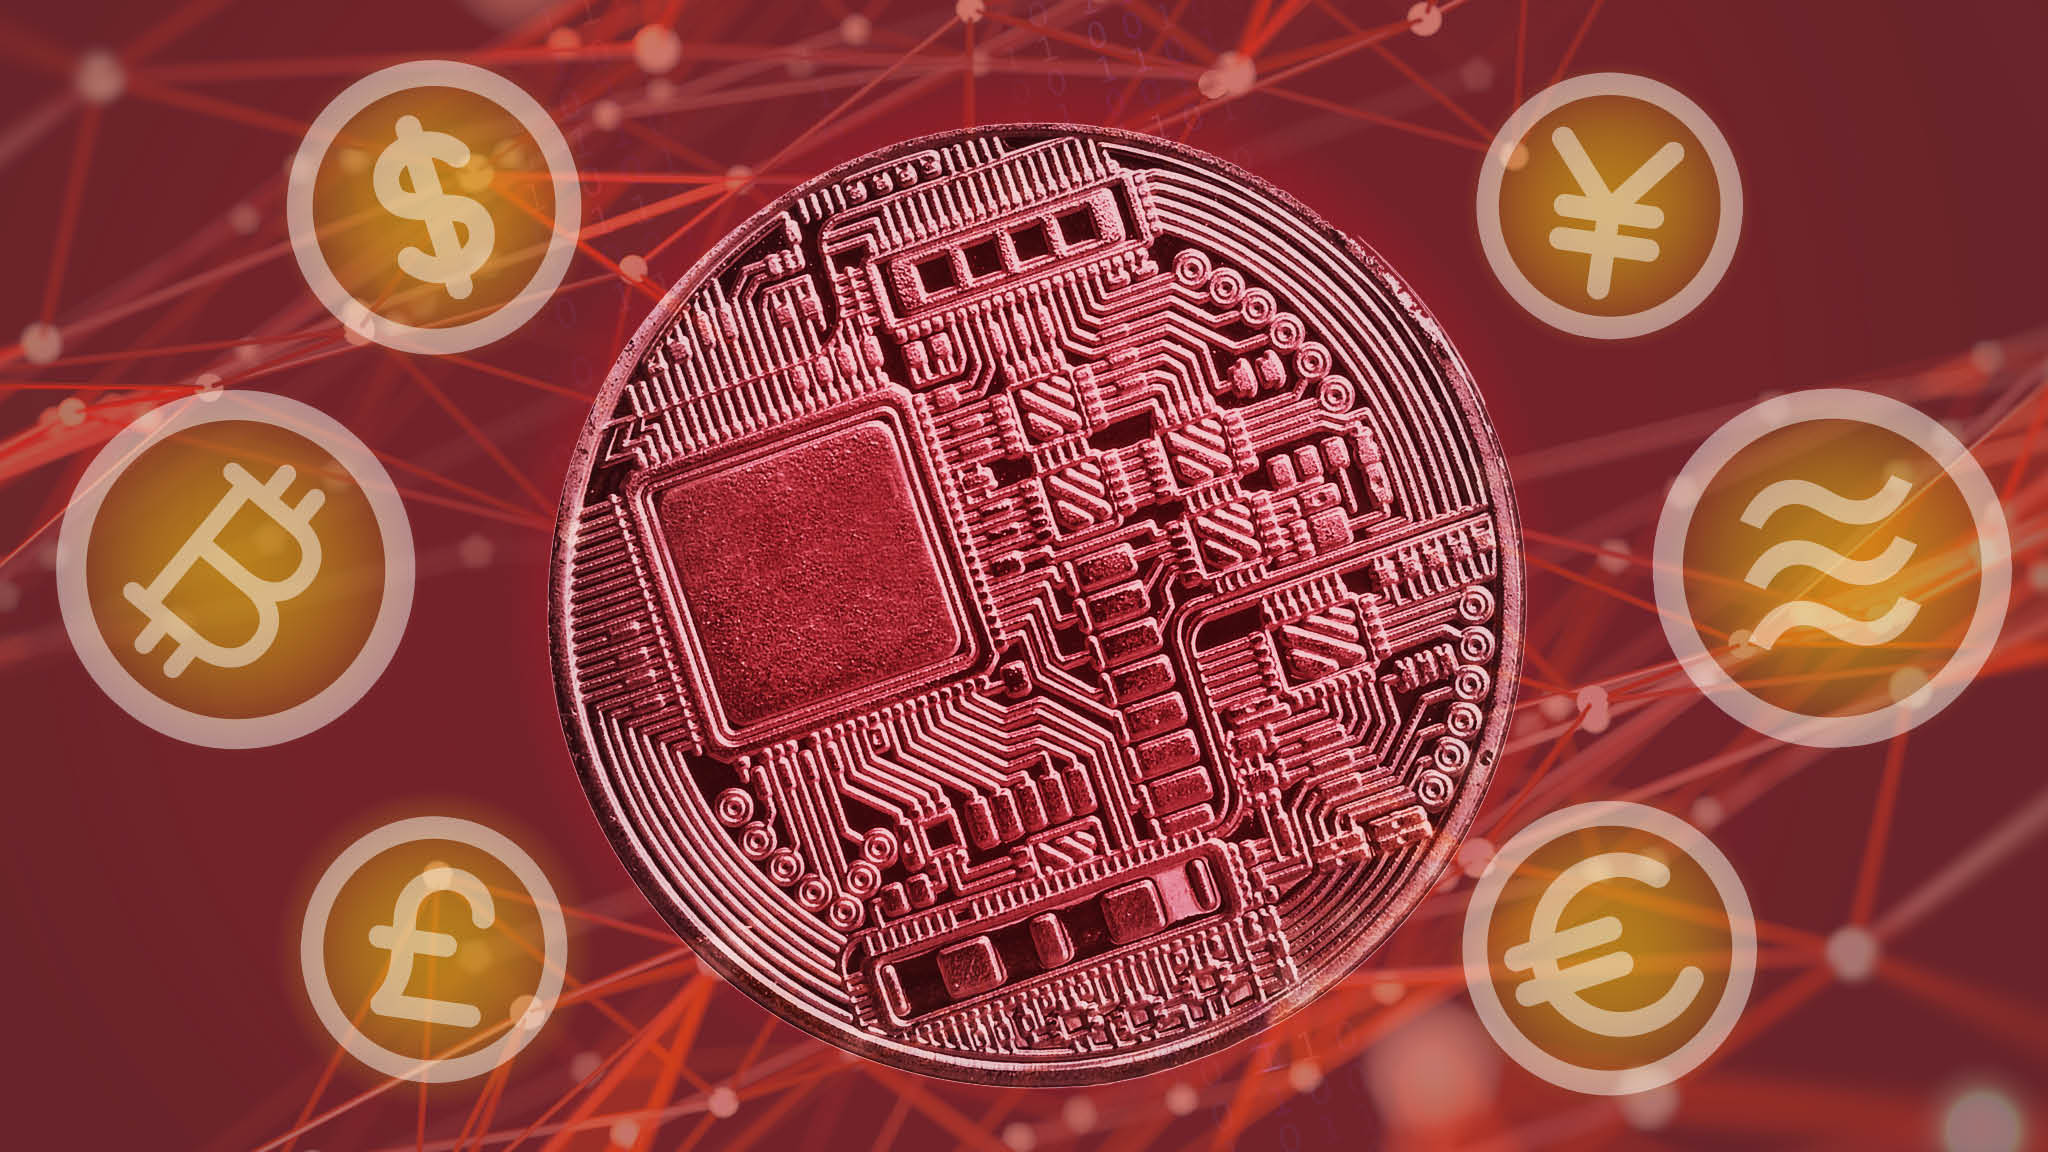 Central banks should issue digital currencies of their own | Financial Times